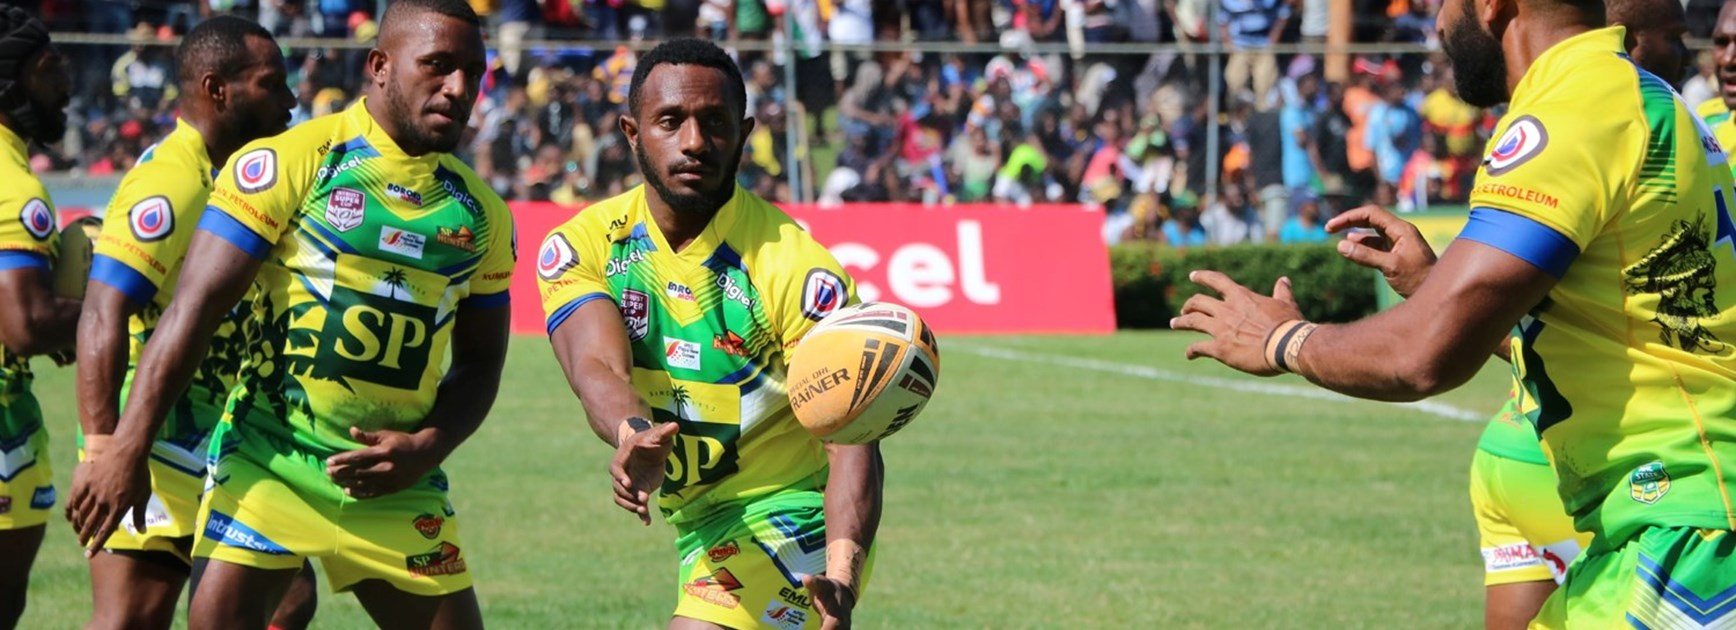 Hunters thrill Lae fans with win over Devils